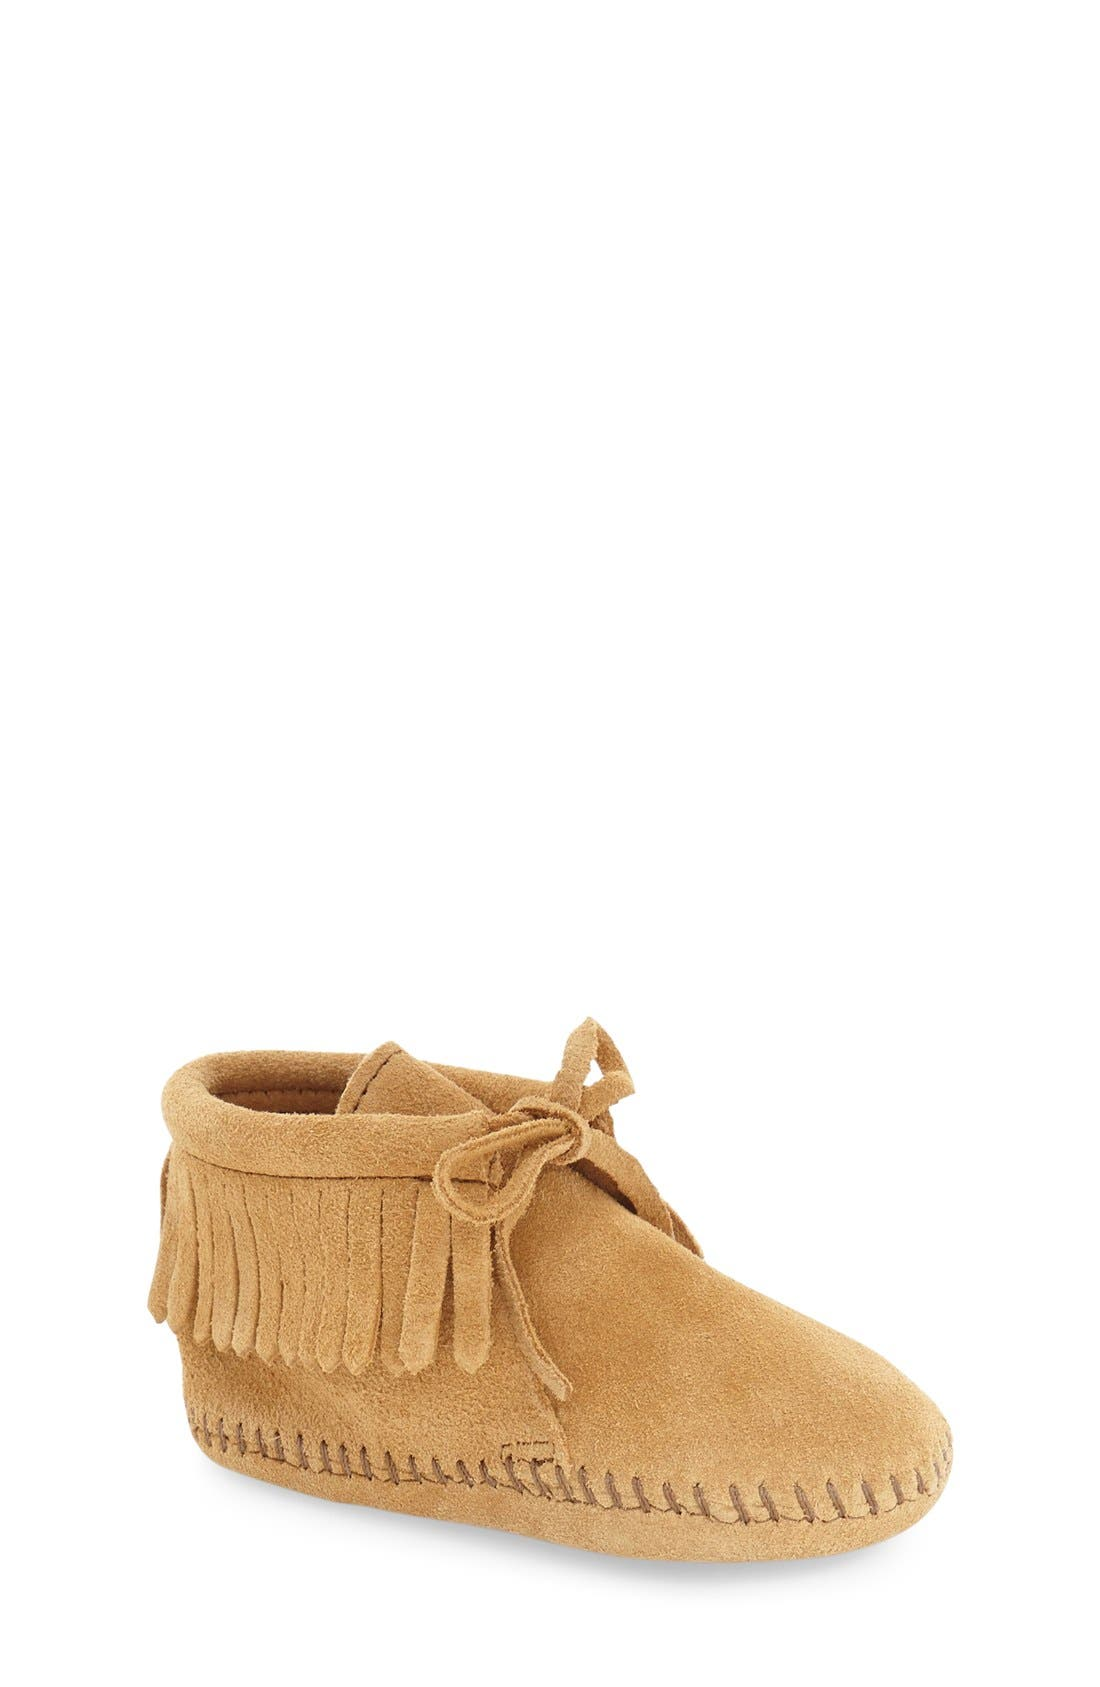 MINNETONKA Fringe Bootie, Main, color, TAN SUEDE